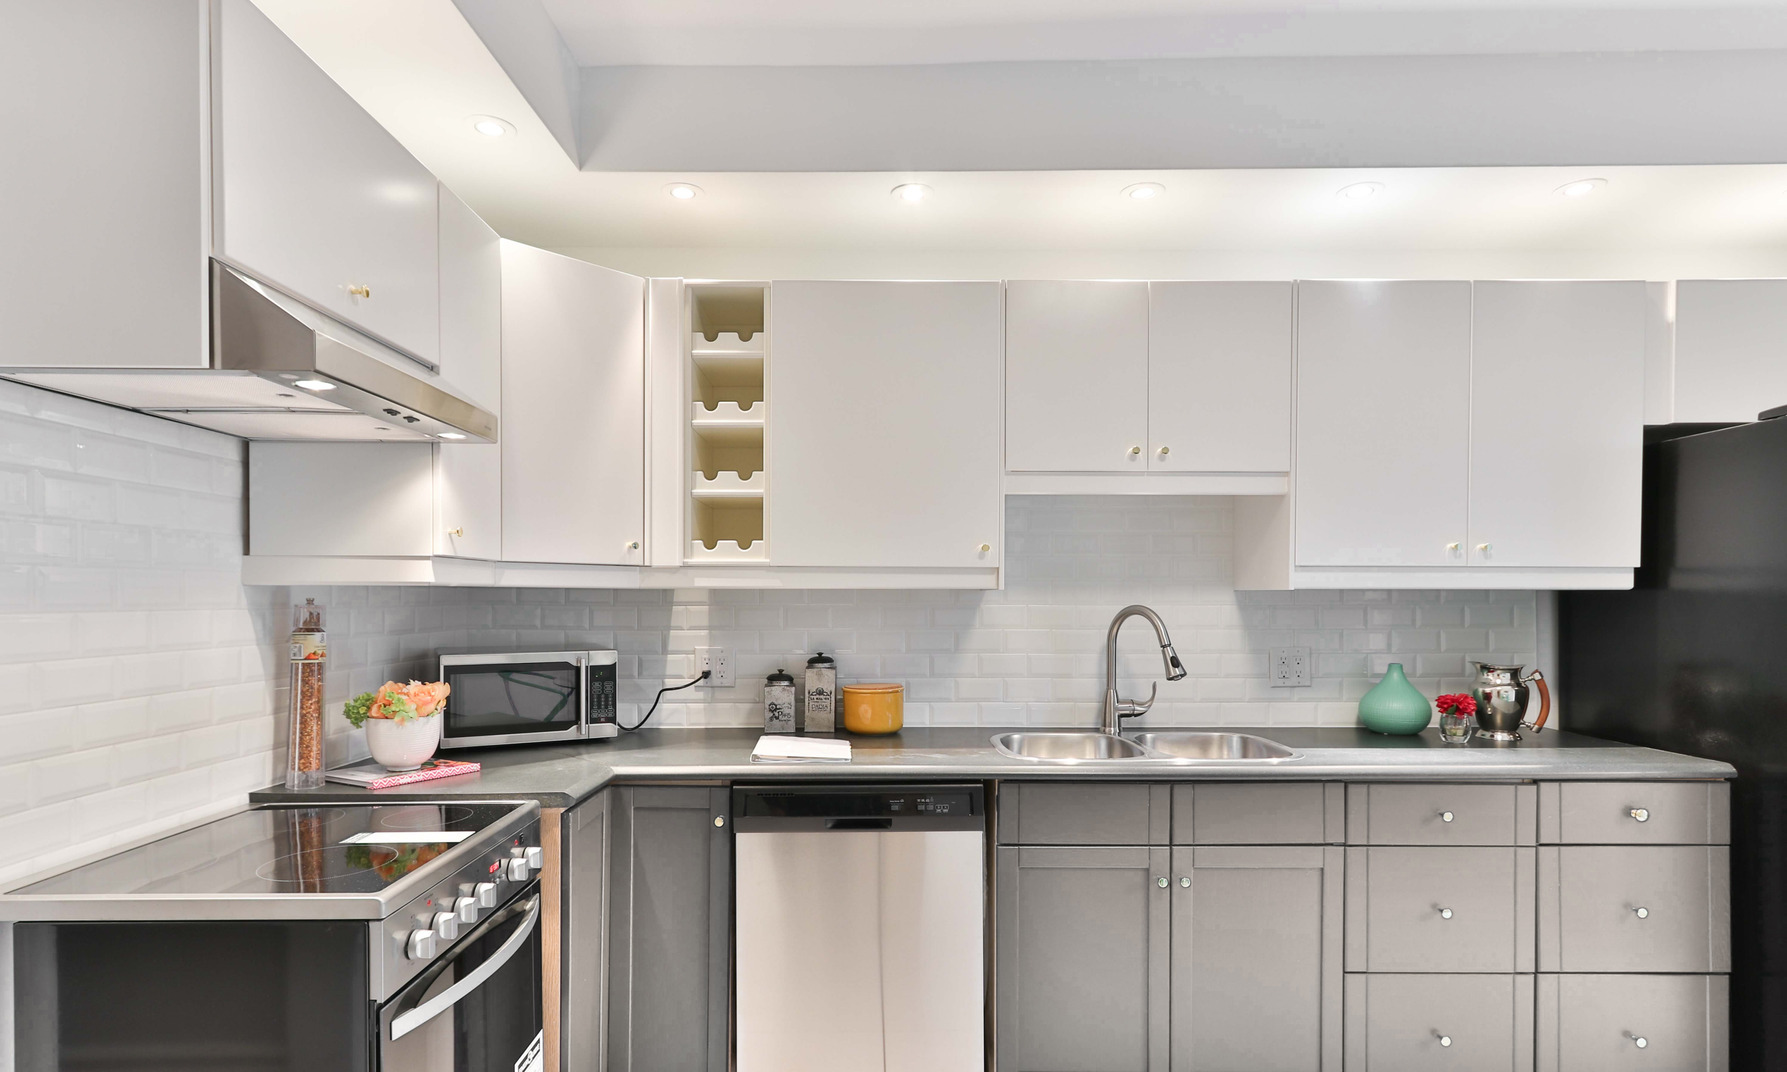 A generic modern kitchen with appliances, cupboards and some decor pieces lit by a row of little lamps